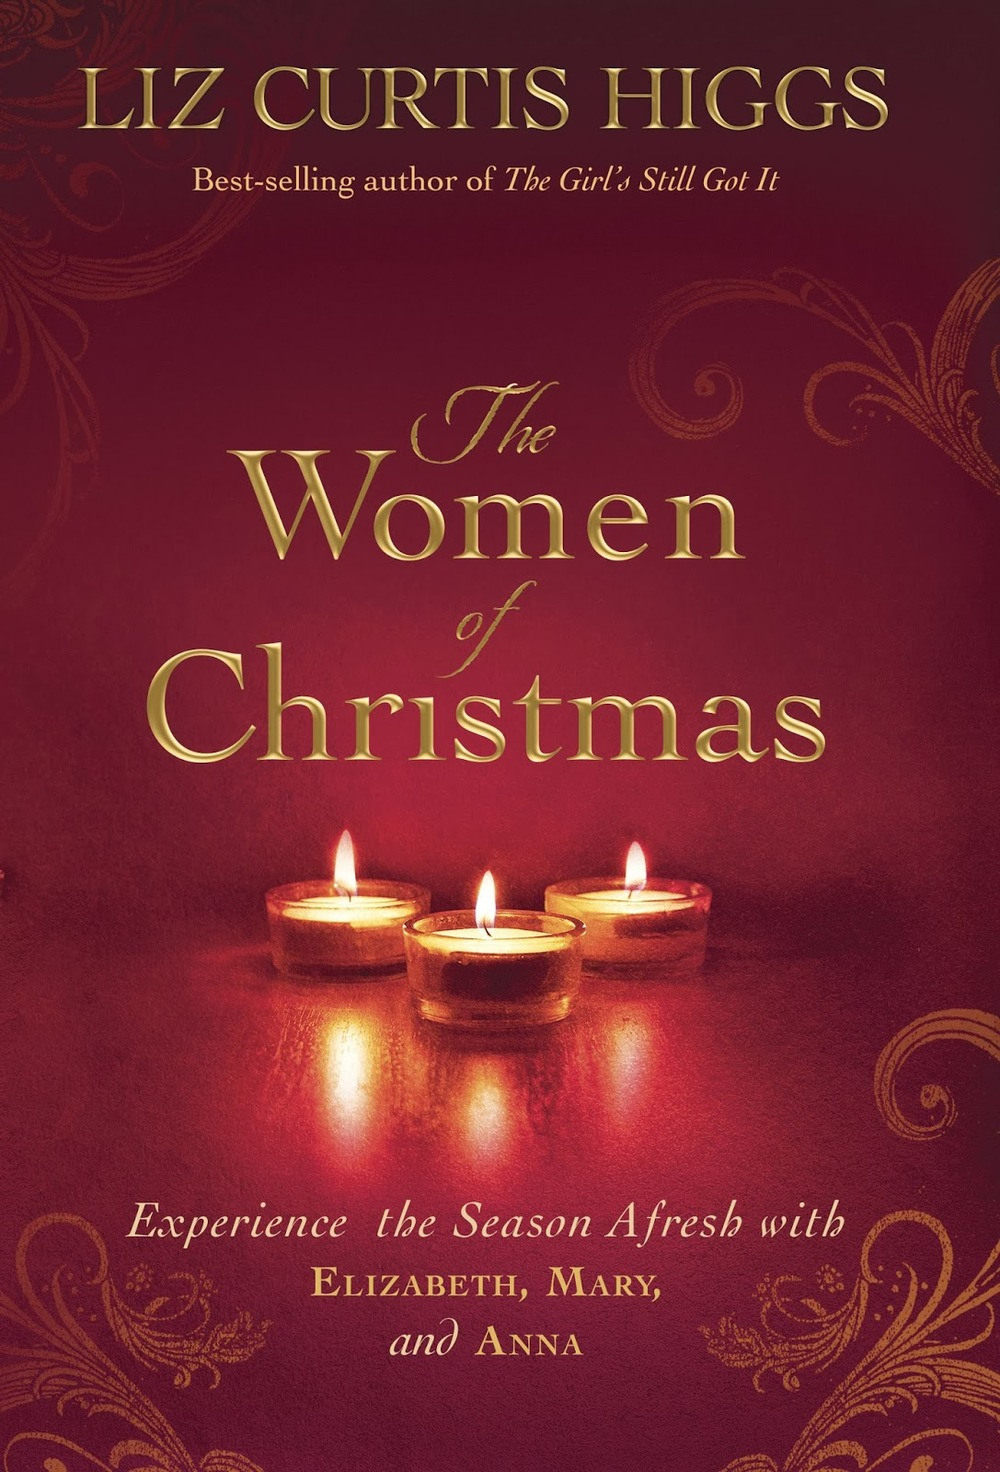 Women of Christmas.jpg